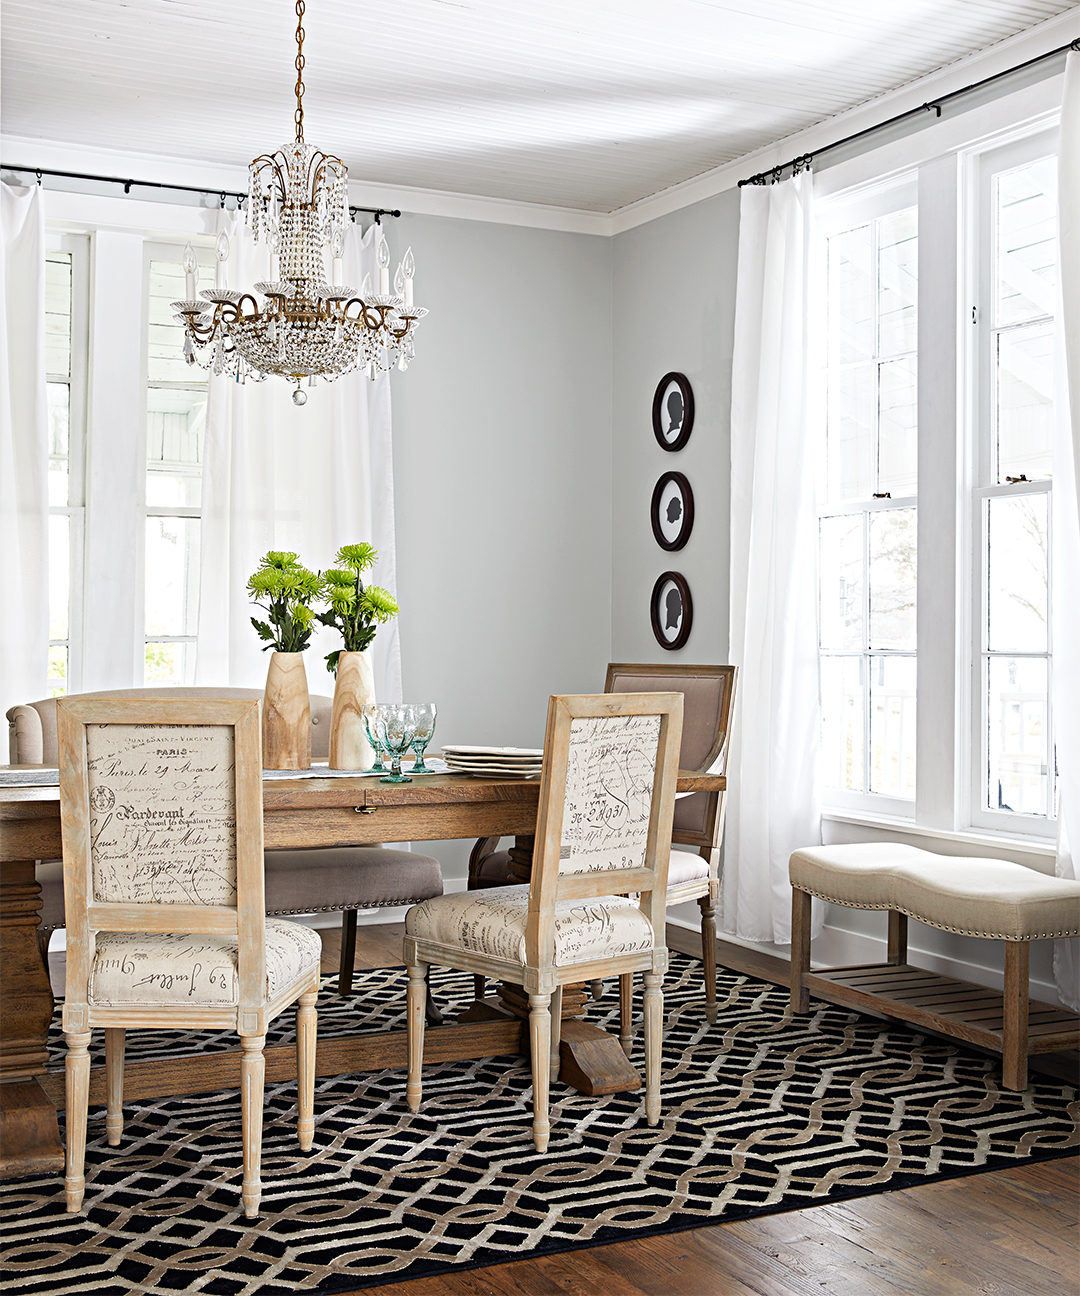 dining room room with framed silhouettes and ceiling height windows